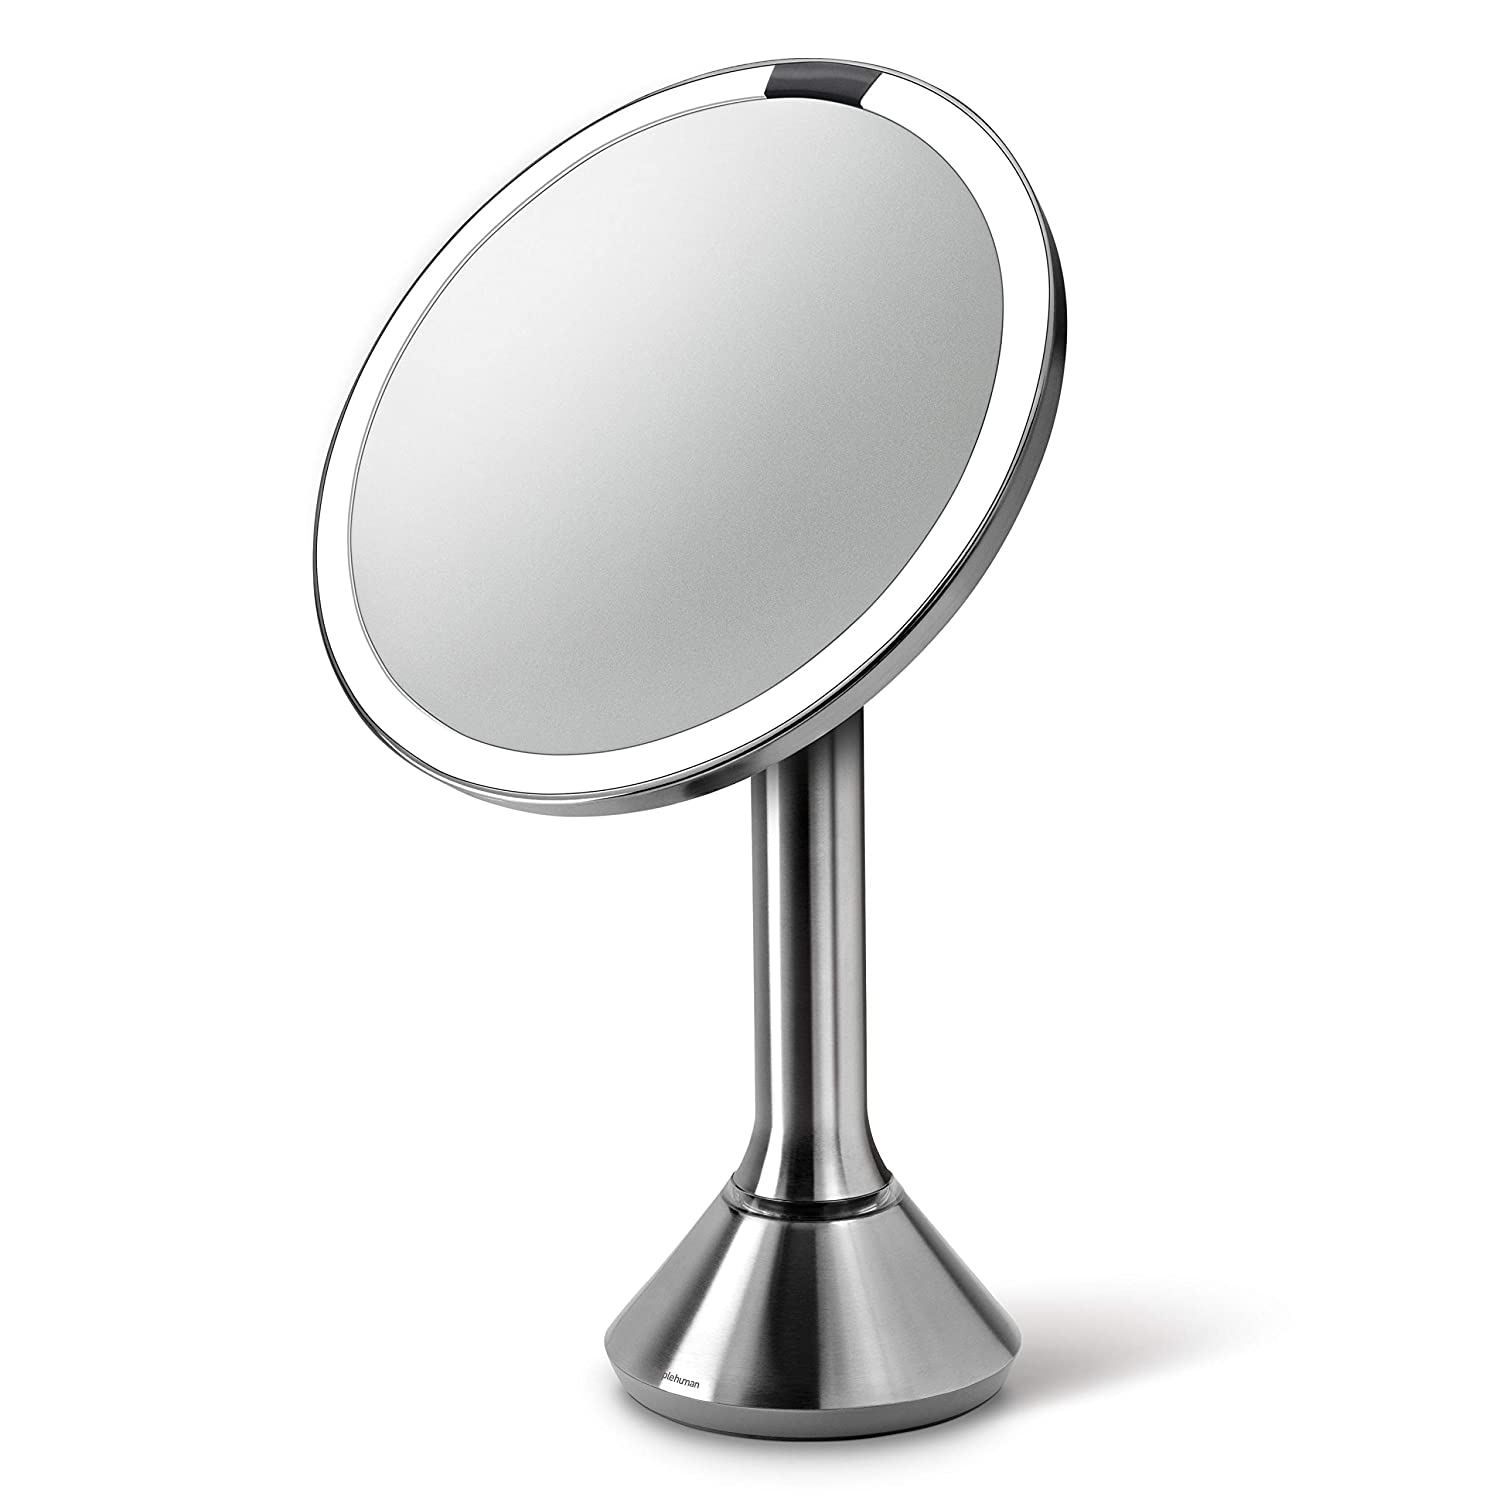 Best Vanity Mirror >> Simplehuman Sensor Lighted Makeup Vanity Mirror 8 Round 5x Magnification Stainless Steel Rechargeable And Cordless